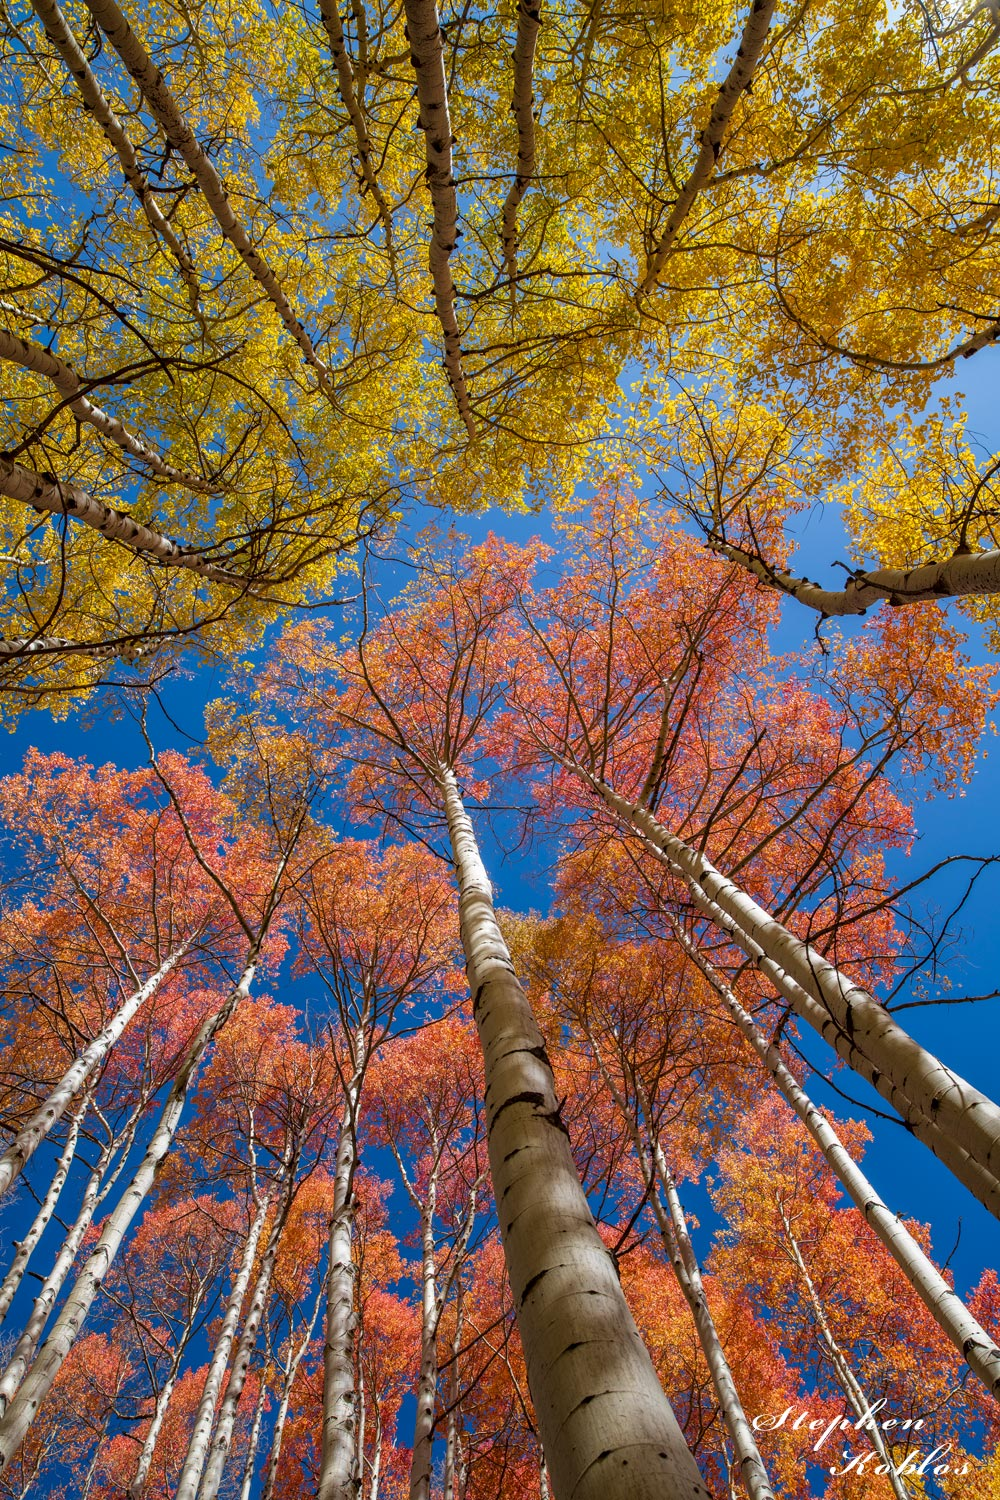 This picture depicts the different colors that aspen leaves can have in the fall. Limited Edition of 100